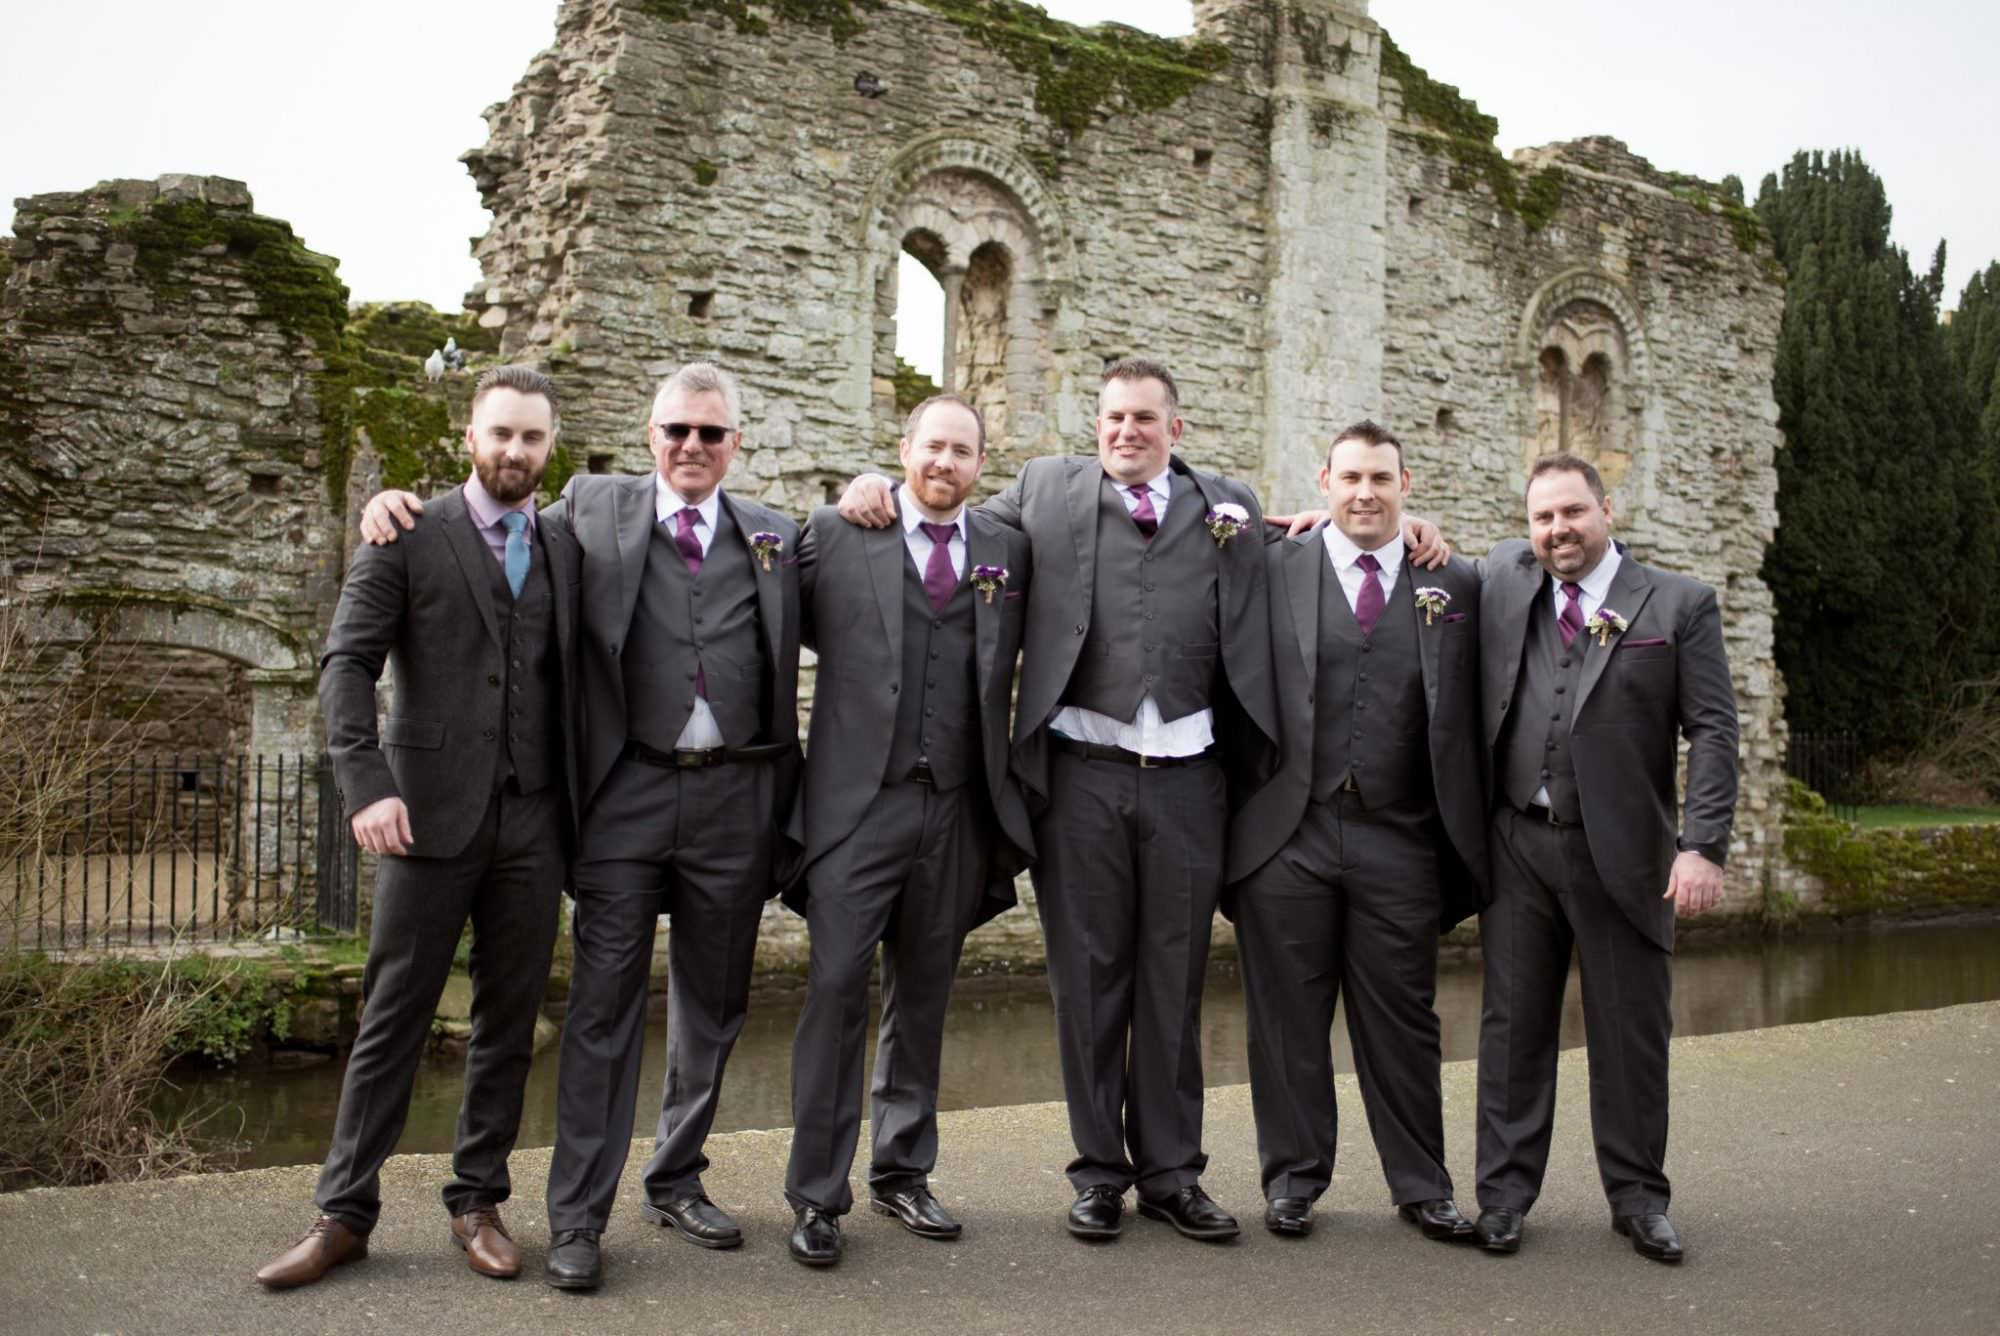 Second shooter at Kings Arms Hotel Wedding